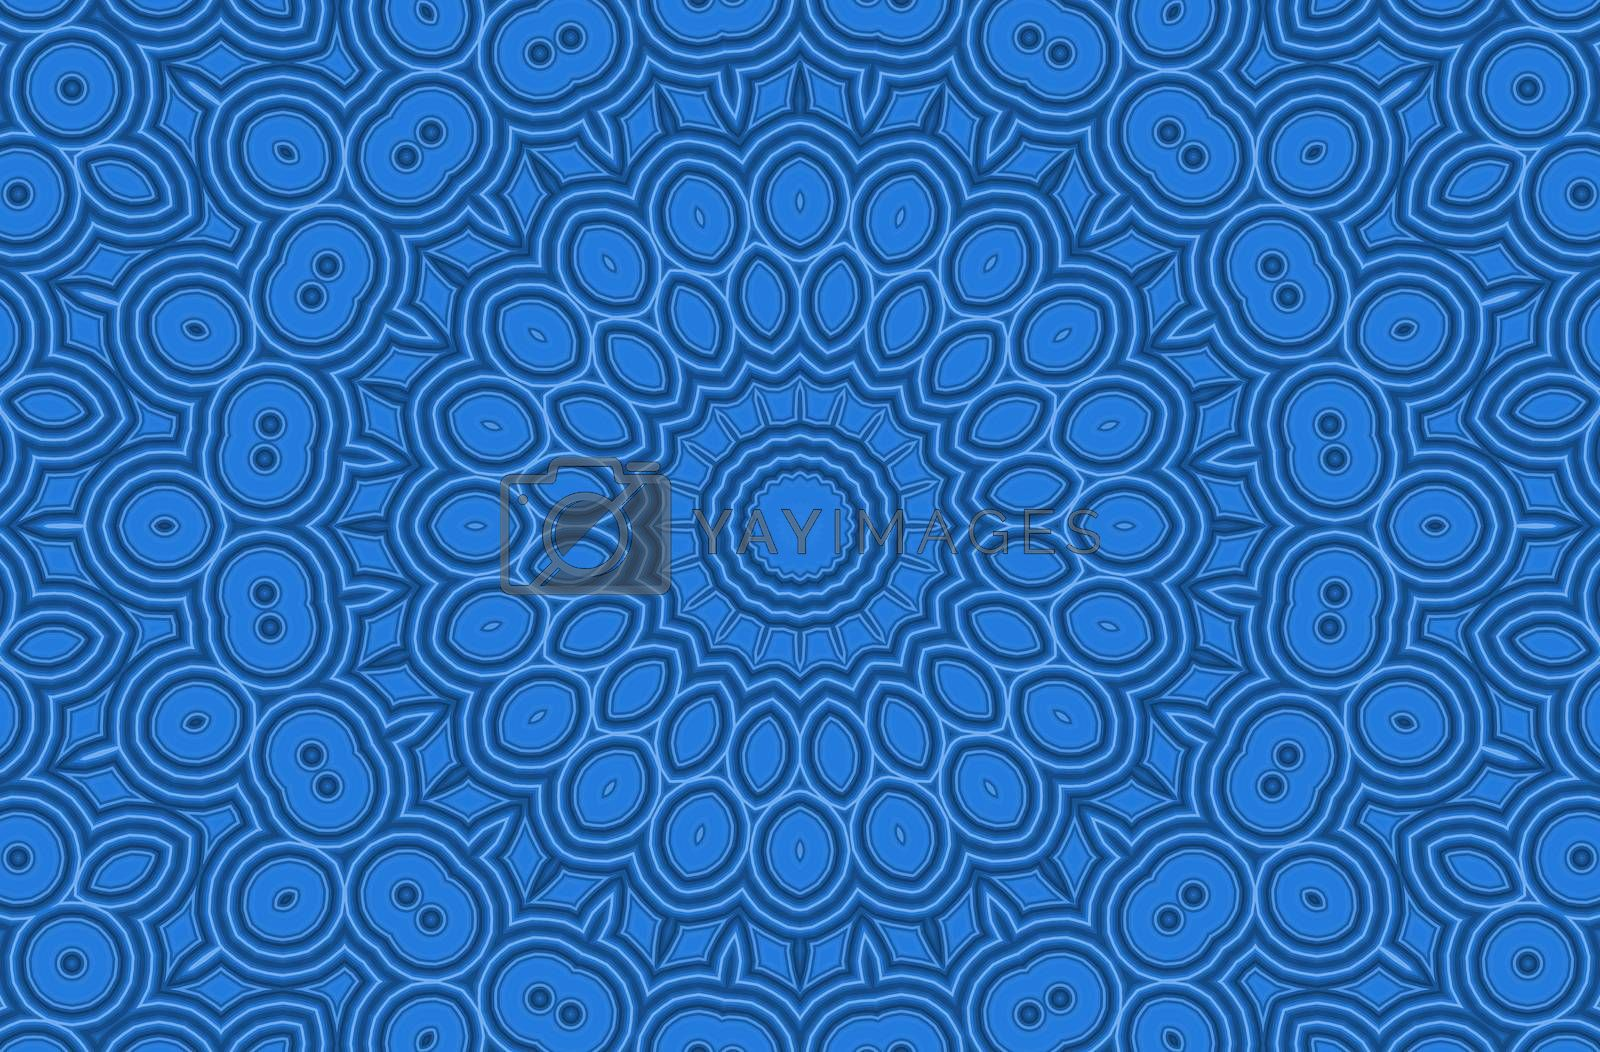 Royalty free image of Background with abstract pattern by dink101